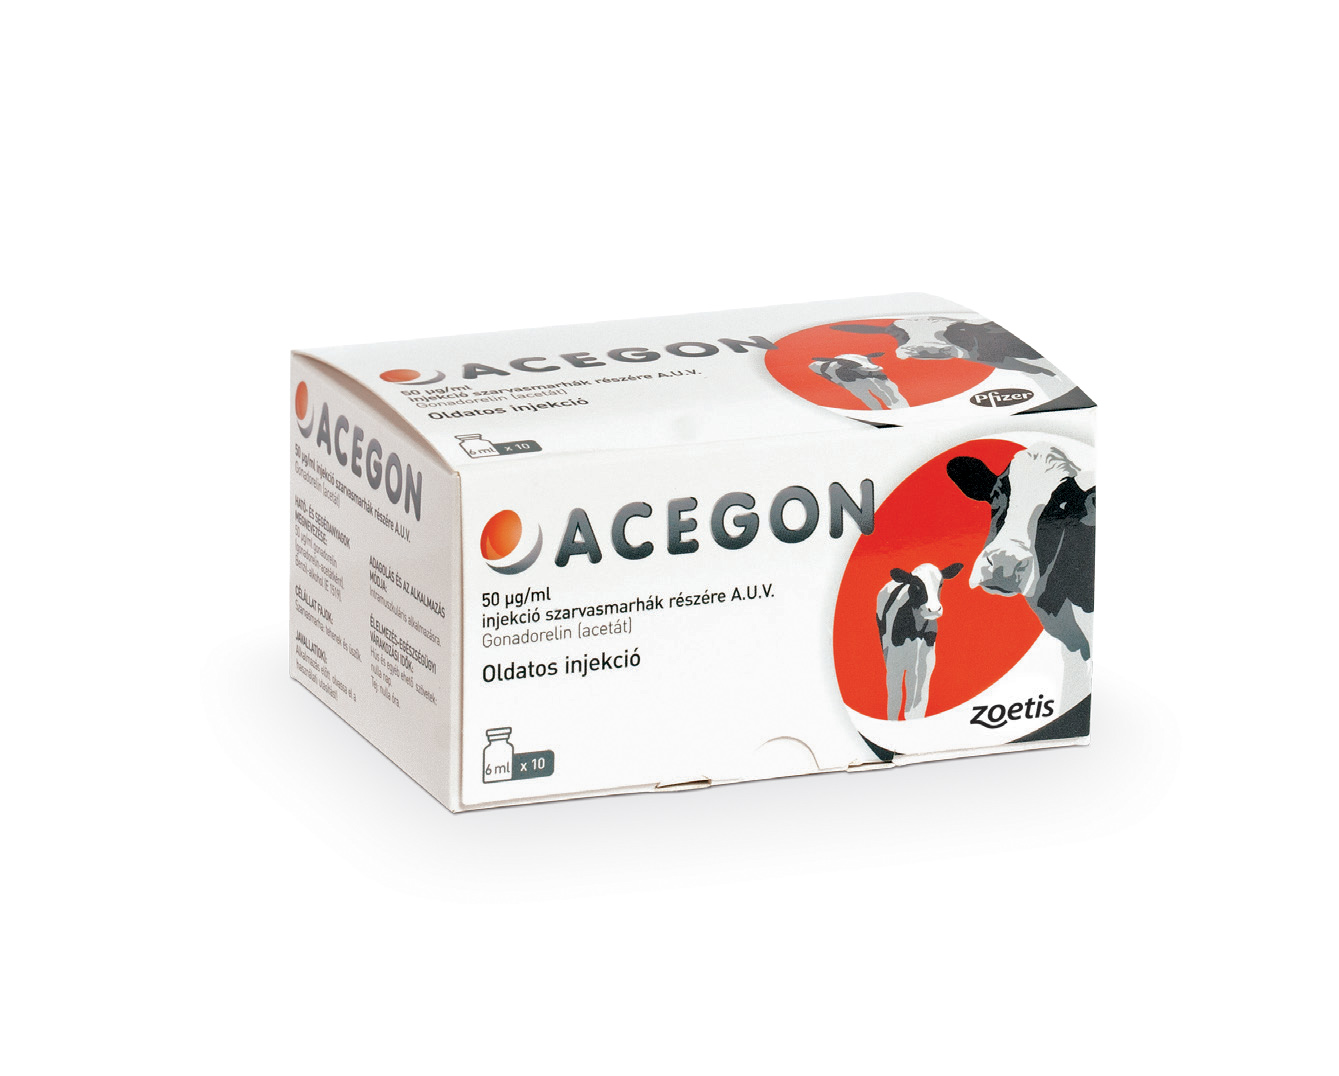 ACEGON Product